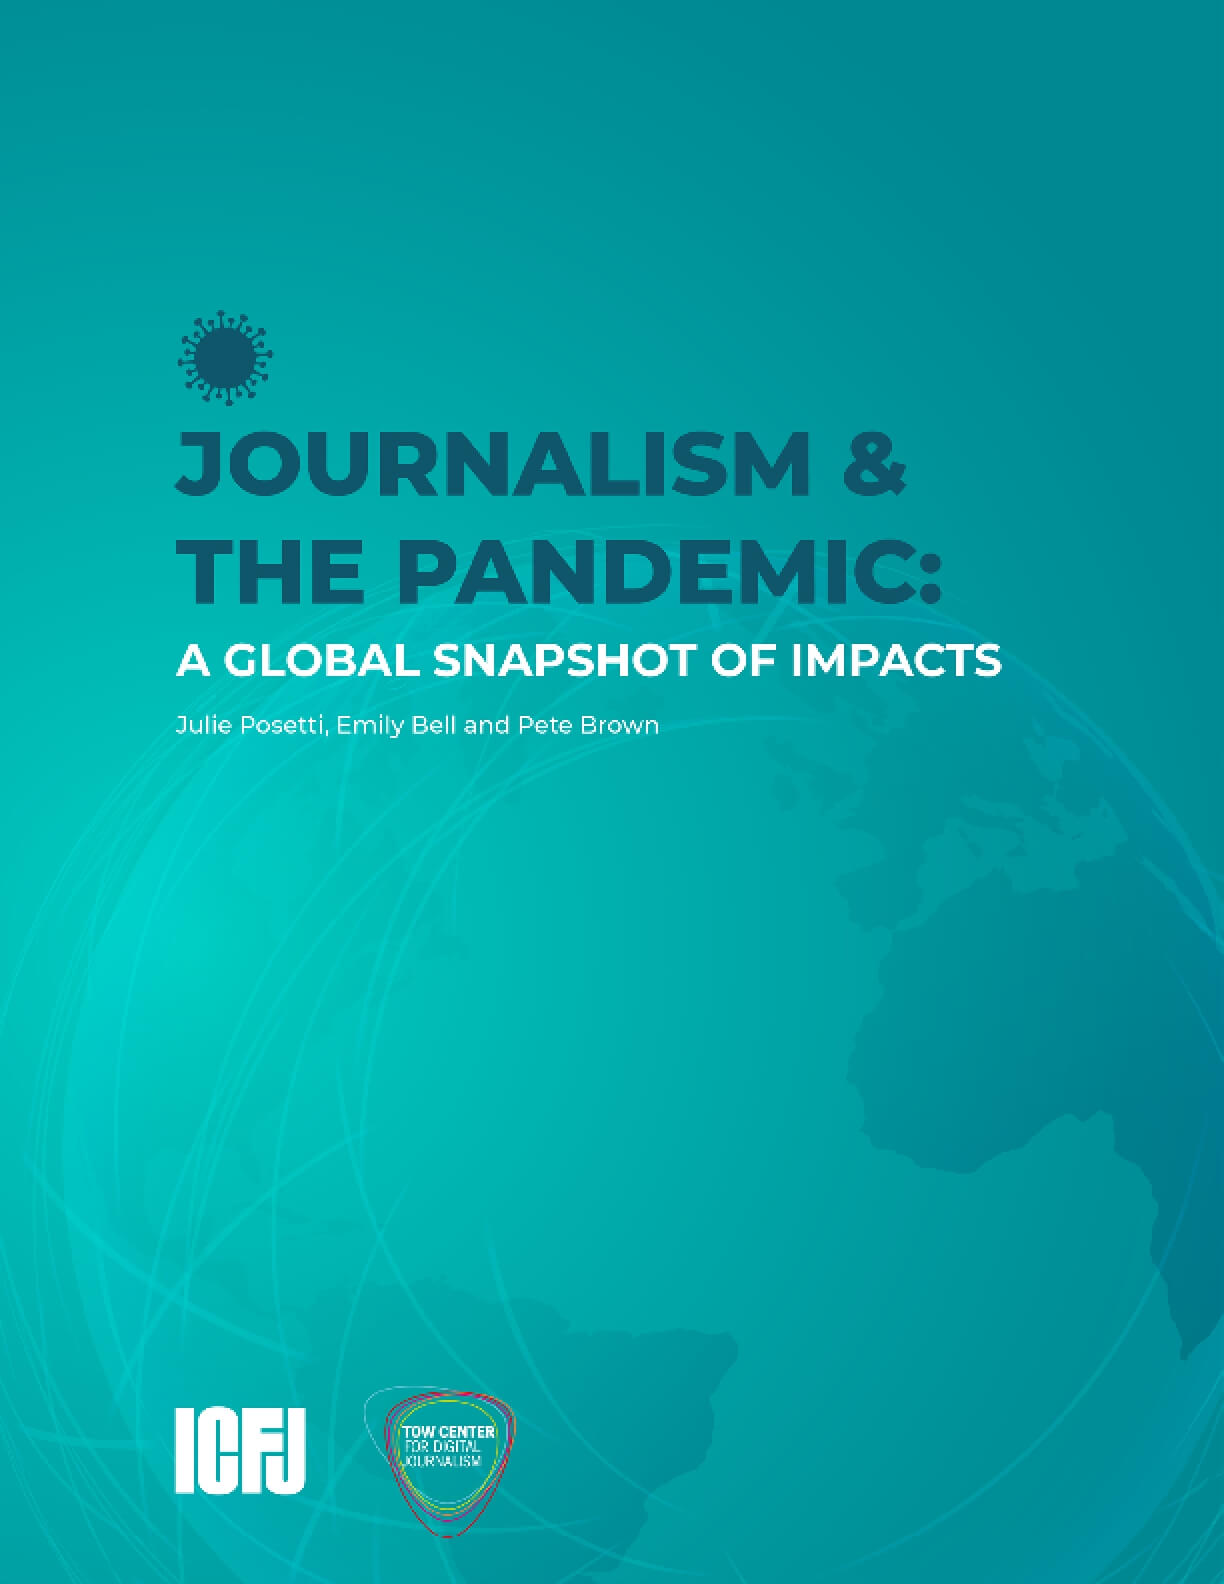 Journalism & The Pandemic: A Global Snapshot of Impacts